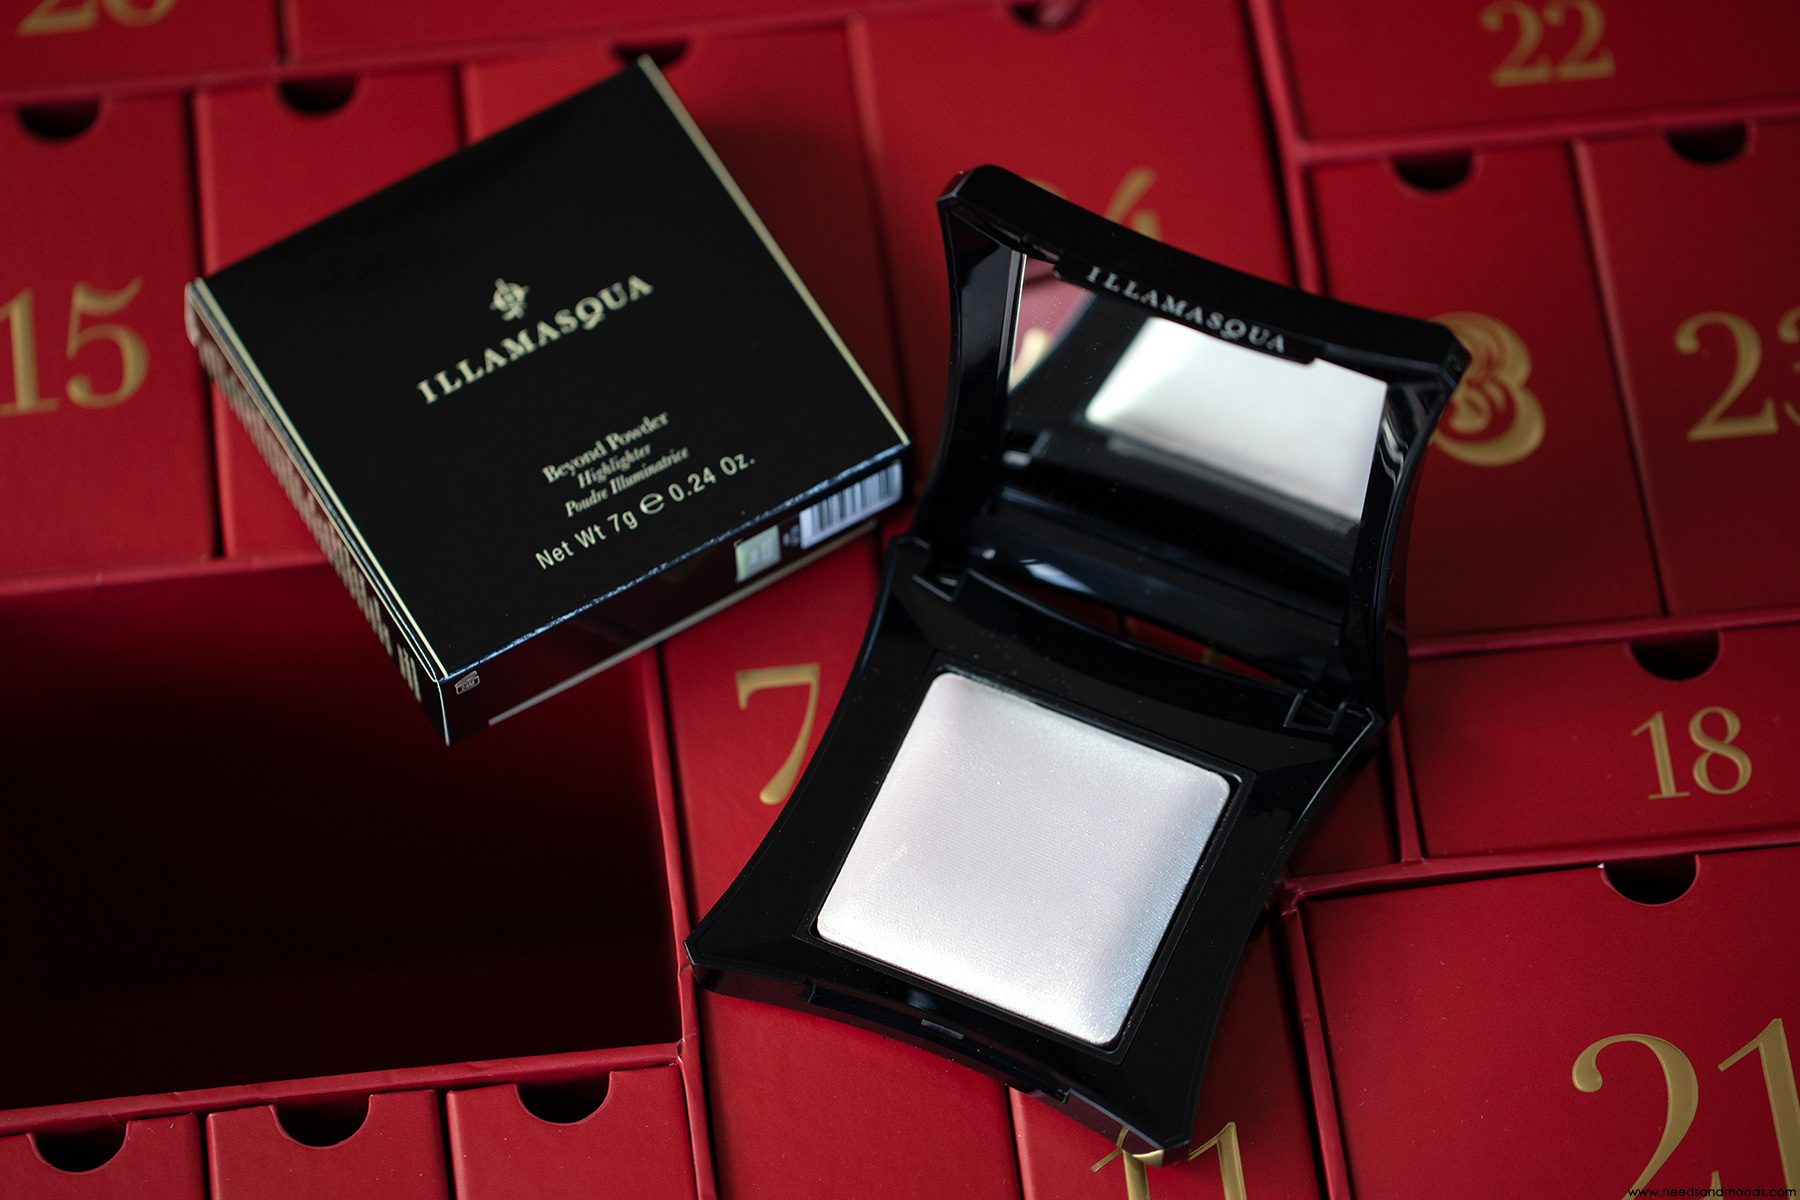 lookfantastic calendrier avent 2018 highlighter illamasqua